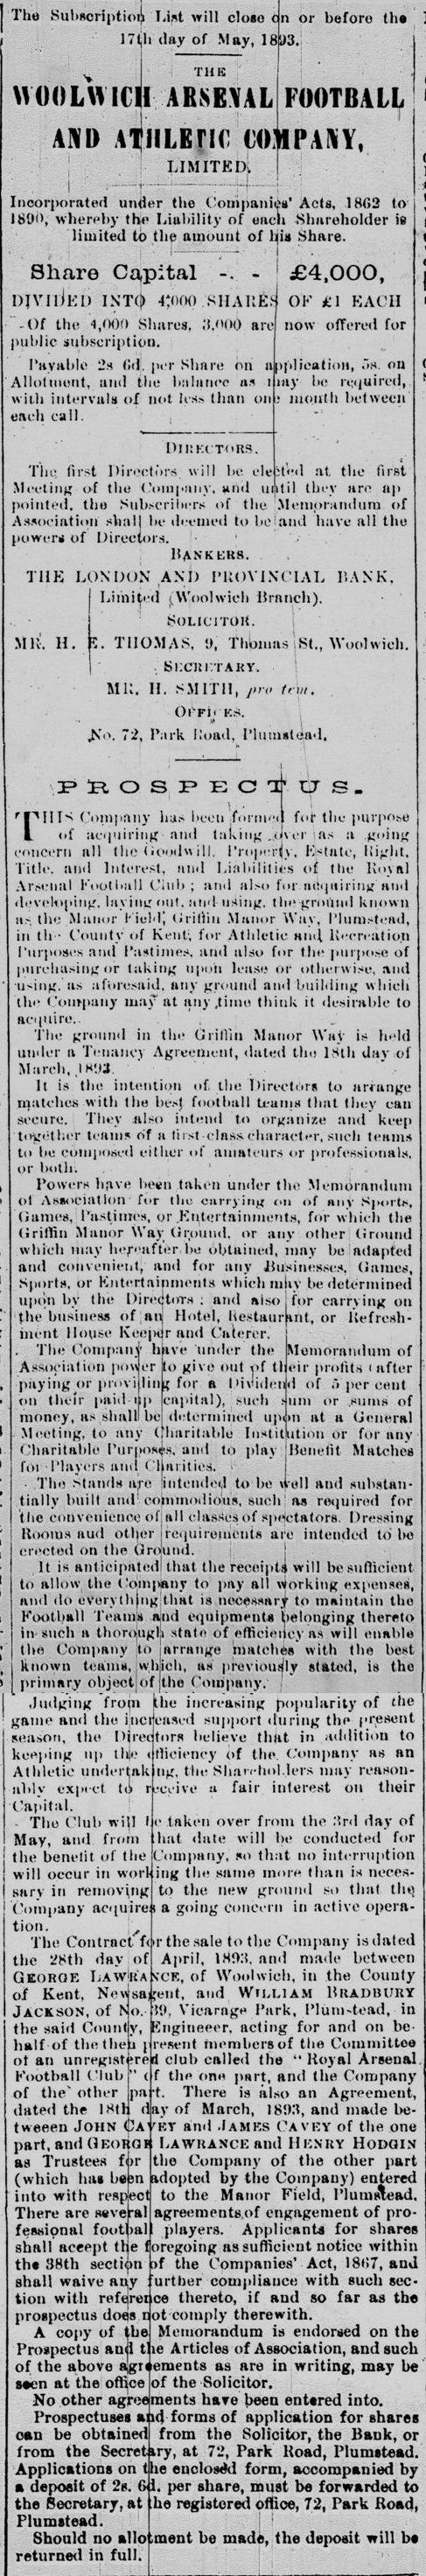 Prospectus for shares in The Woolwich Arsenal Football And Athletic Company Limited